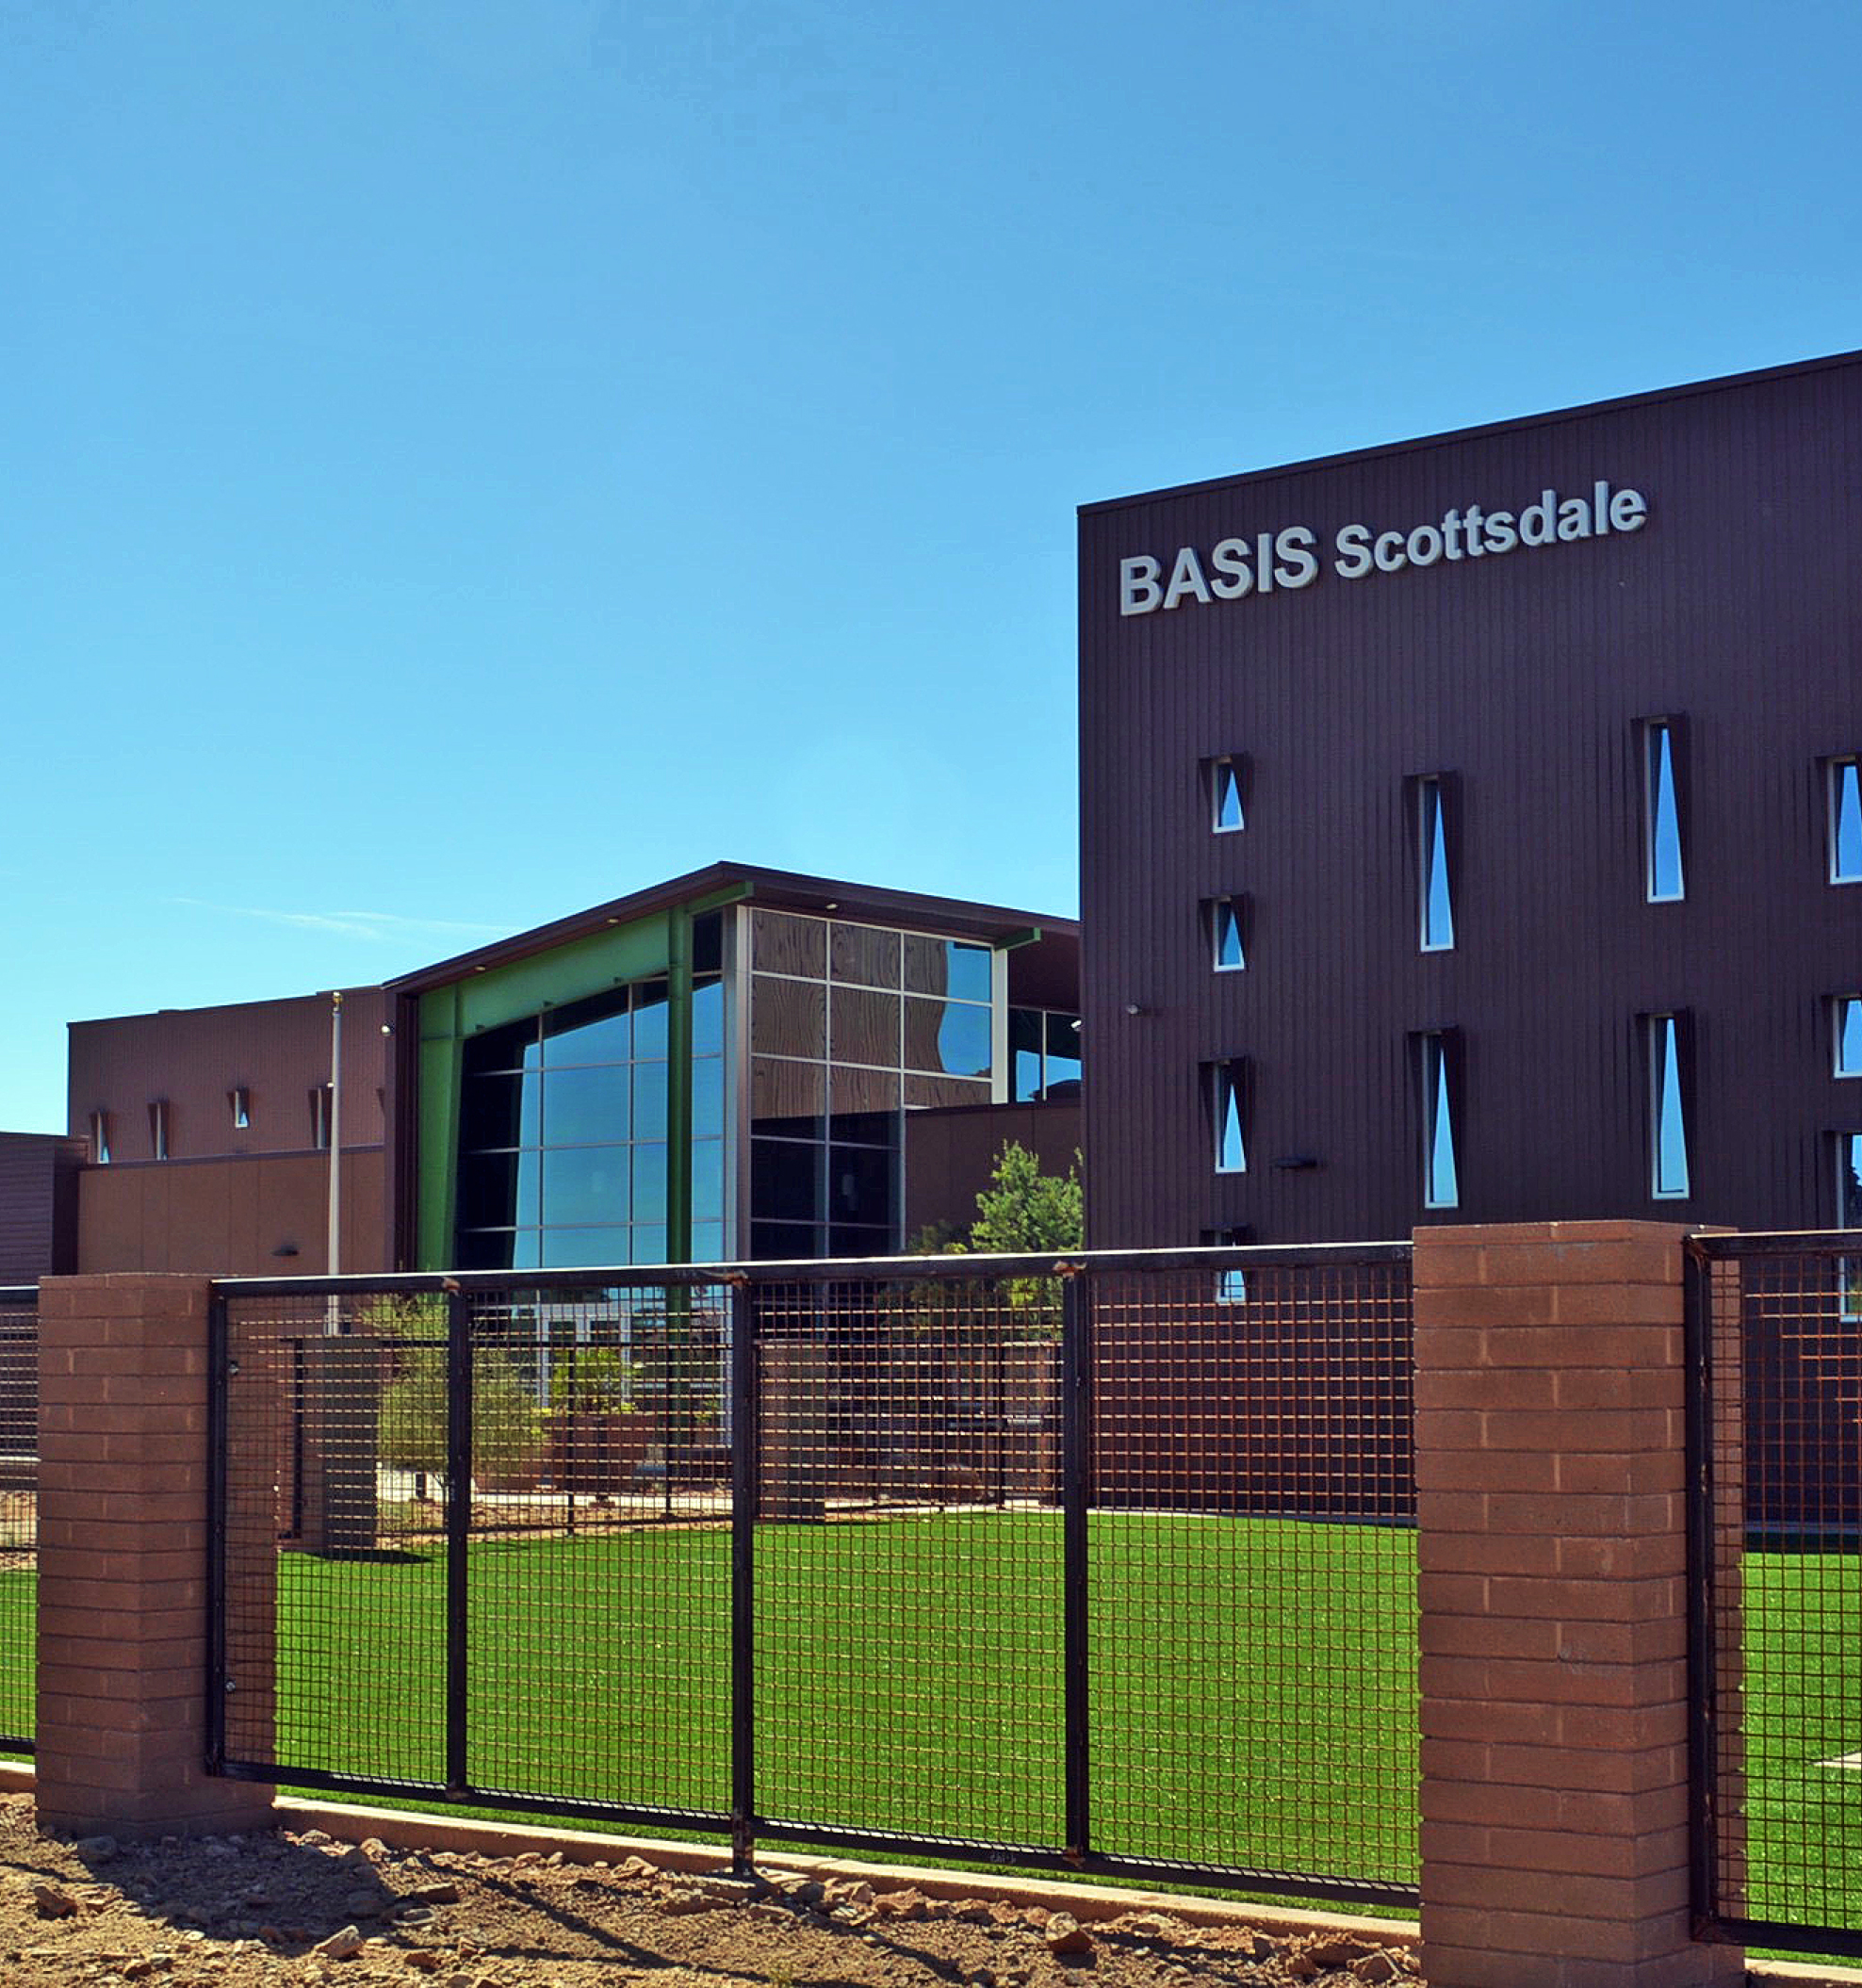 Basis scottsdale